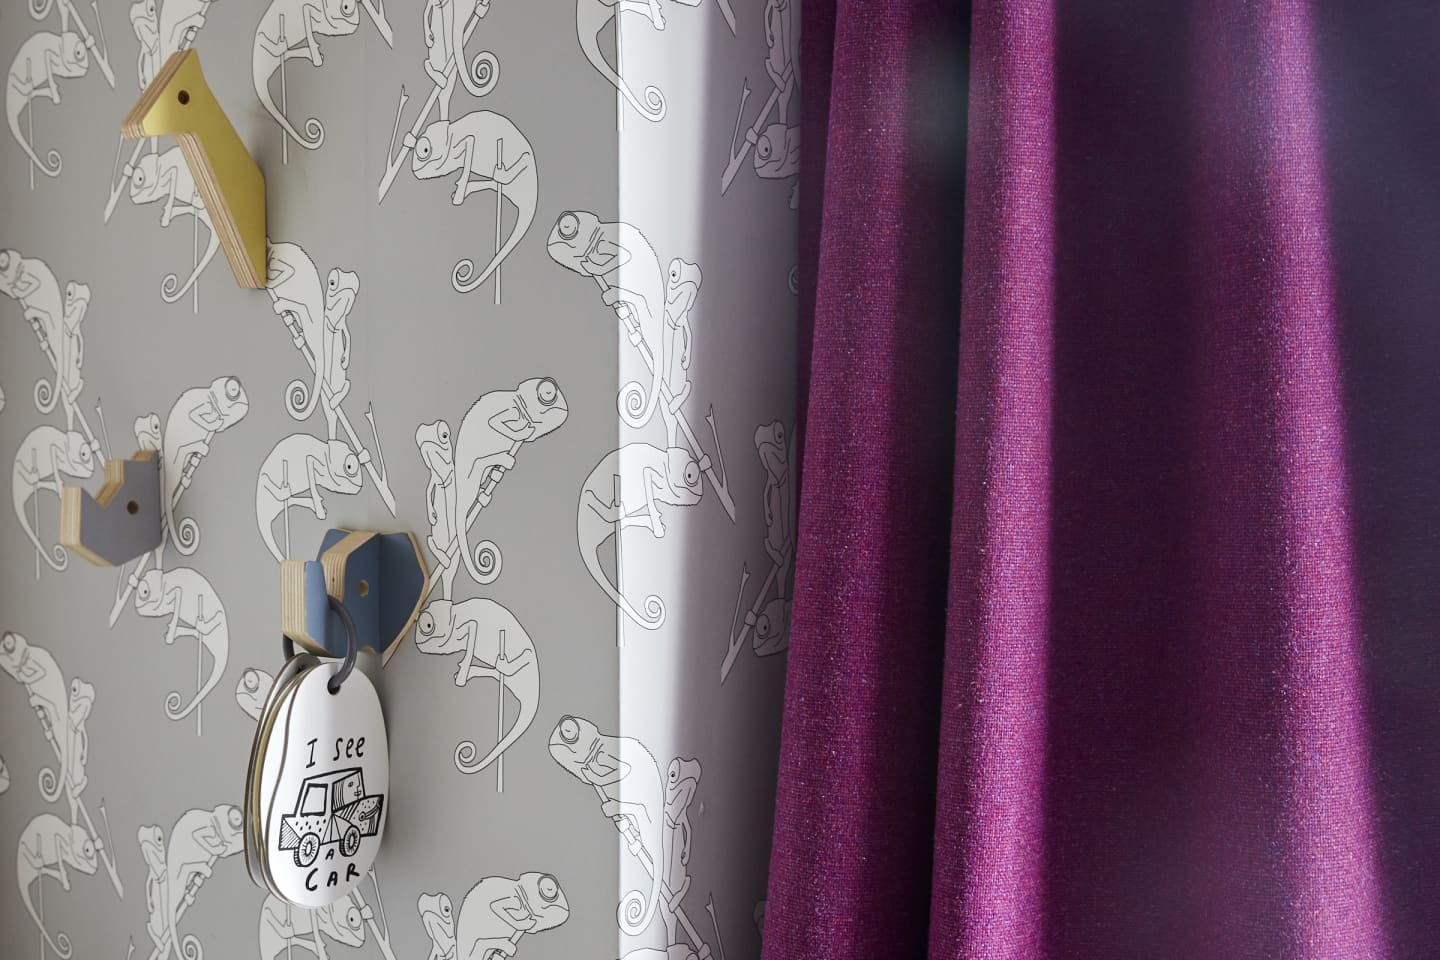 chameleon wall paper and pink curtains close up